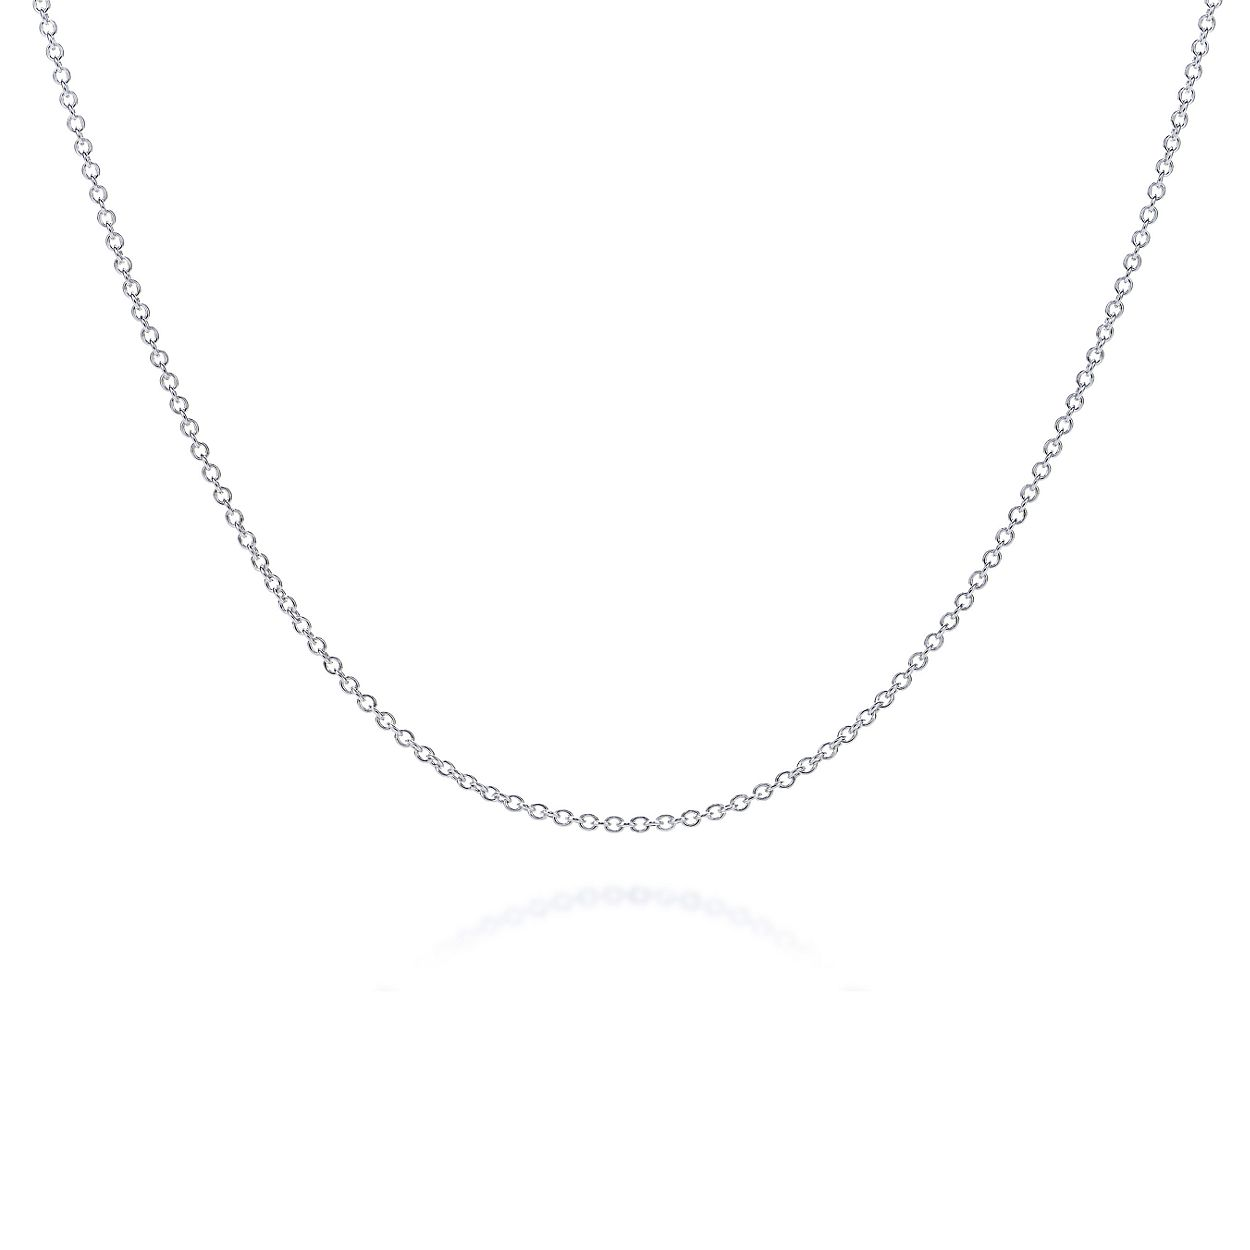 chain silver extender quot com dp necklace sterling amazon